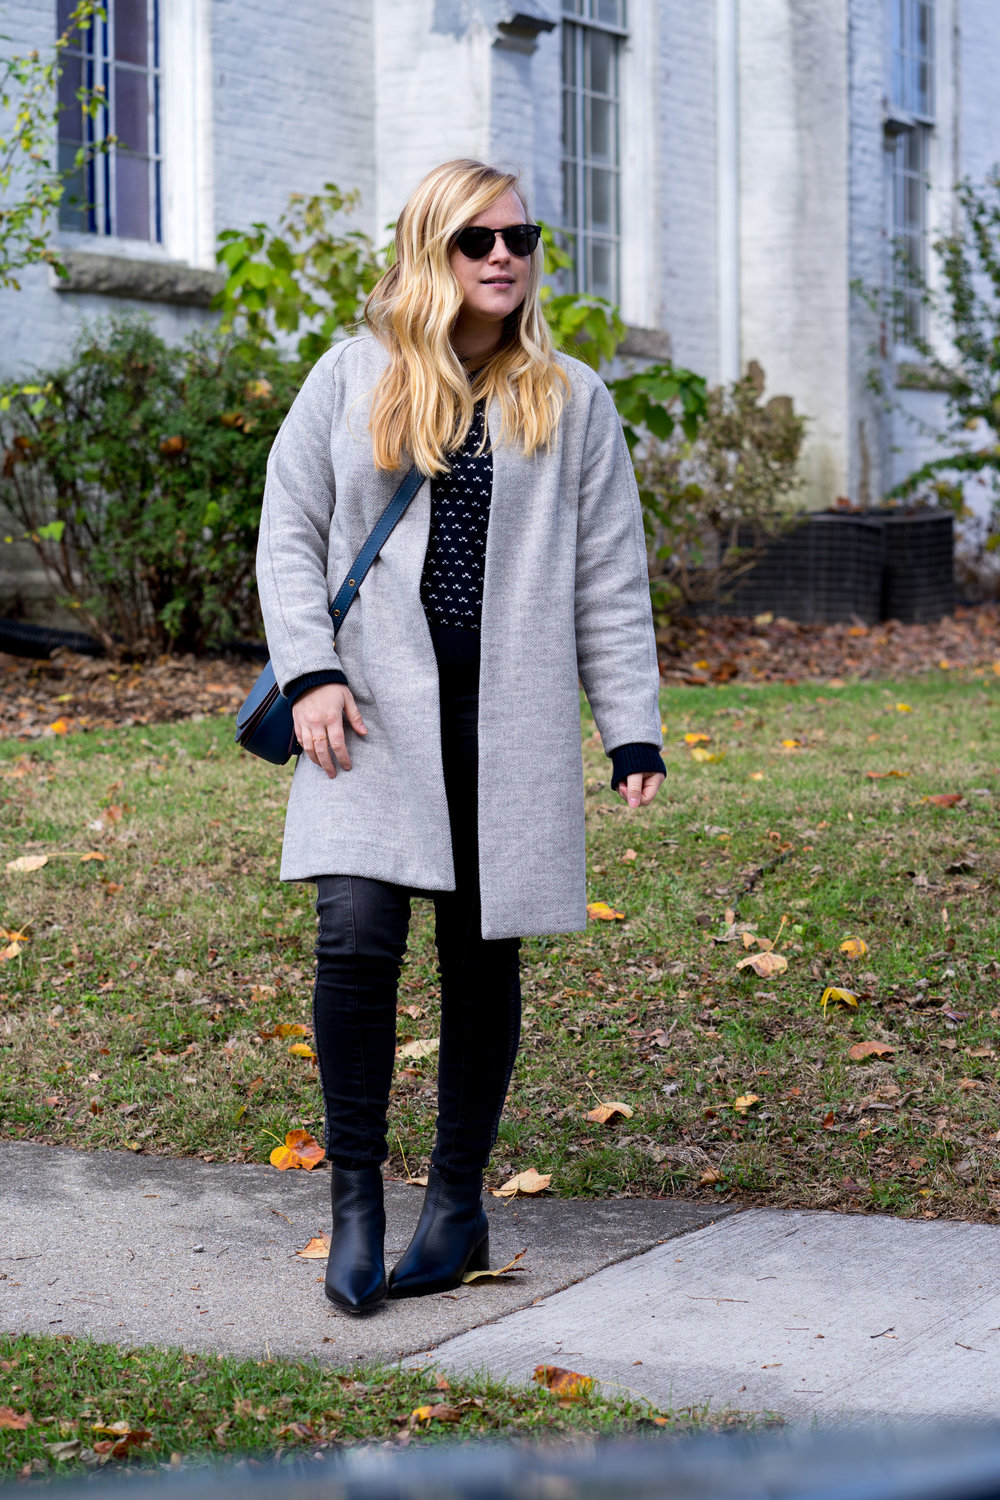 Maggie a la Mode - The Perfect Herringbone Coat Madewell Stanza Coat Everlane Boss Boot-2.jpg